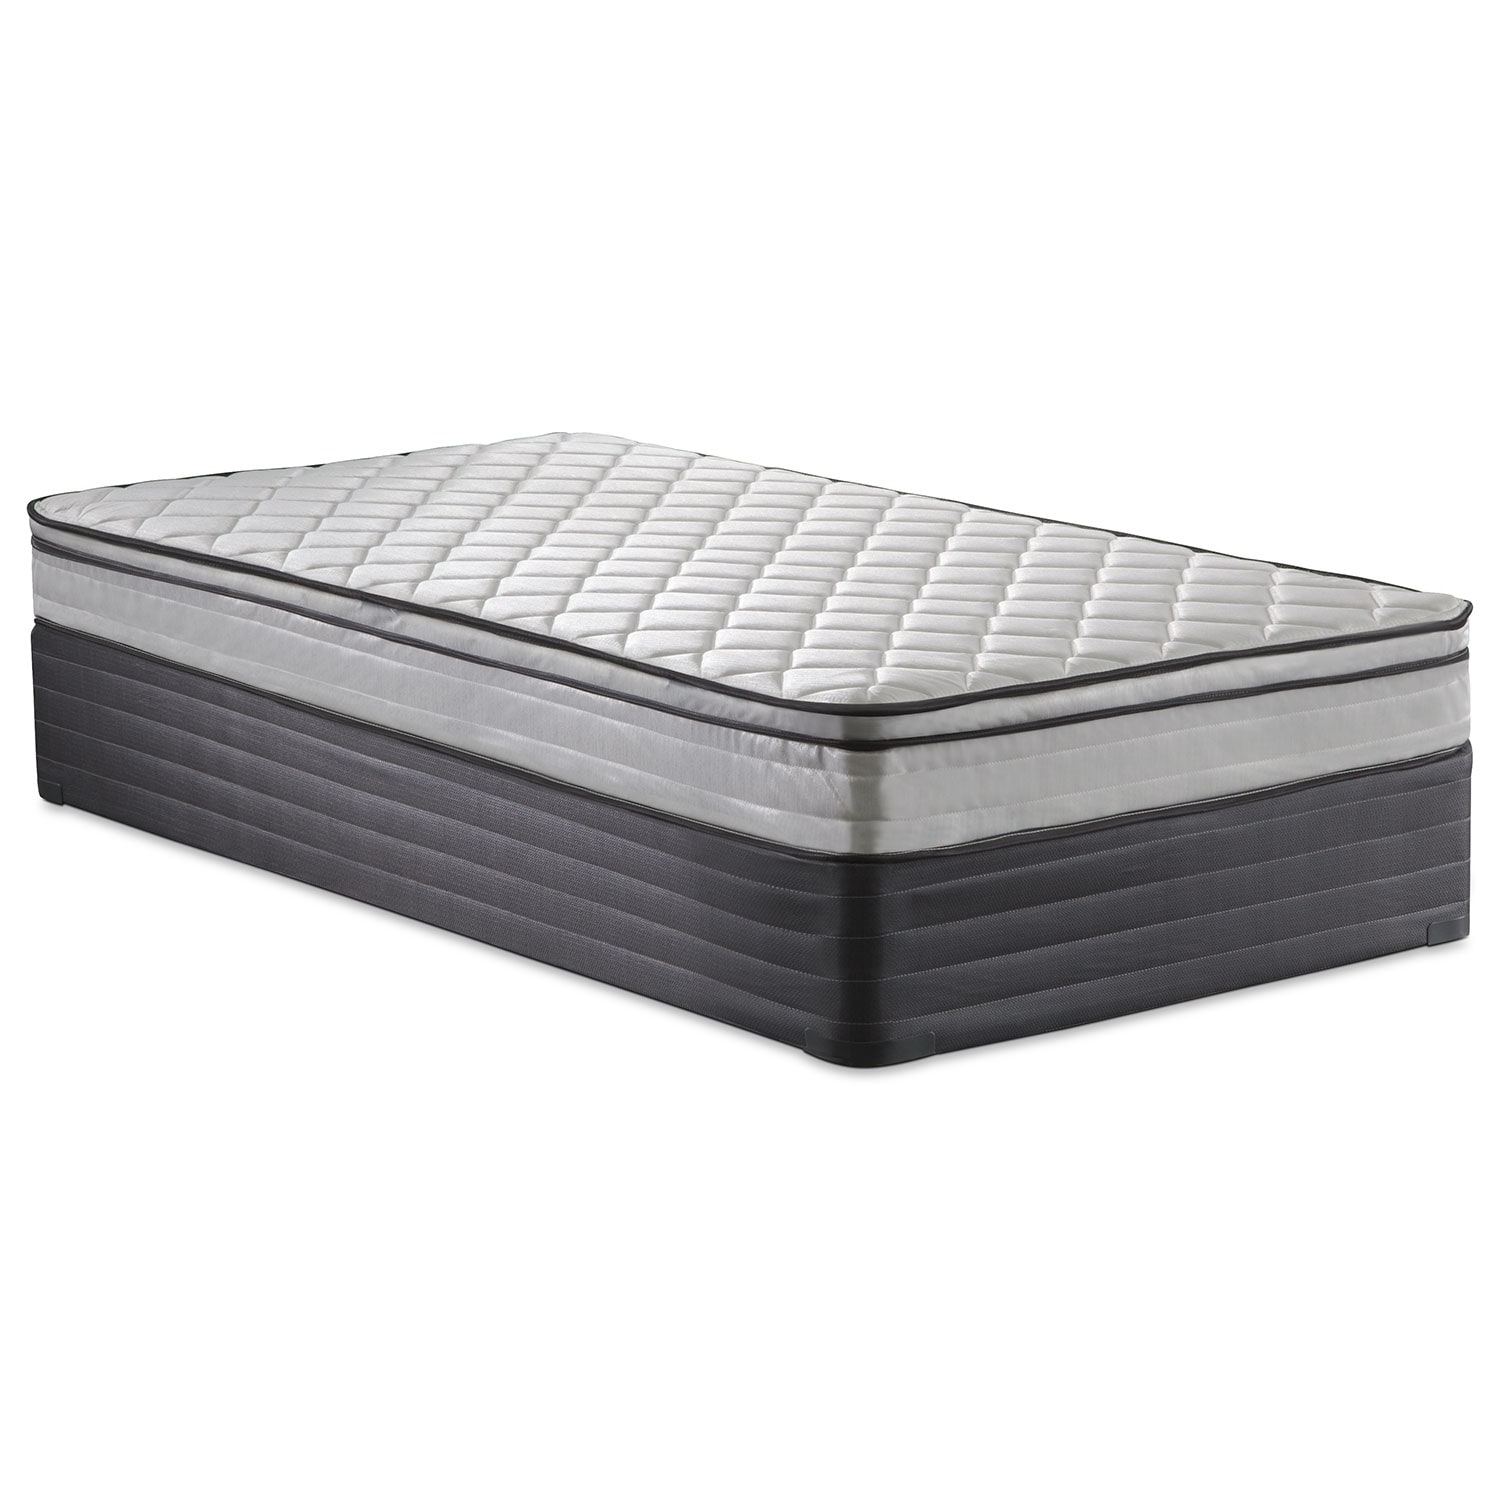 [Mirage Full Mattress/Foundation Set]